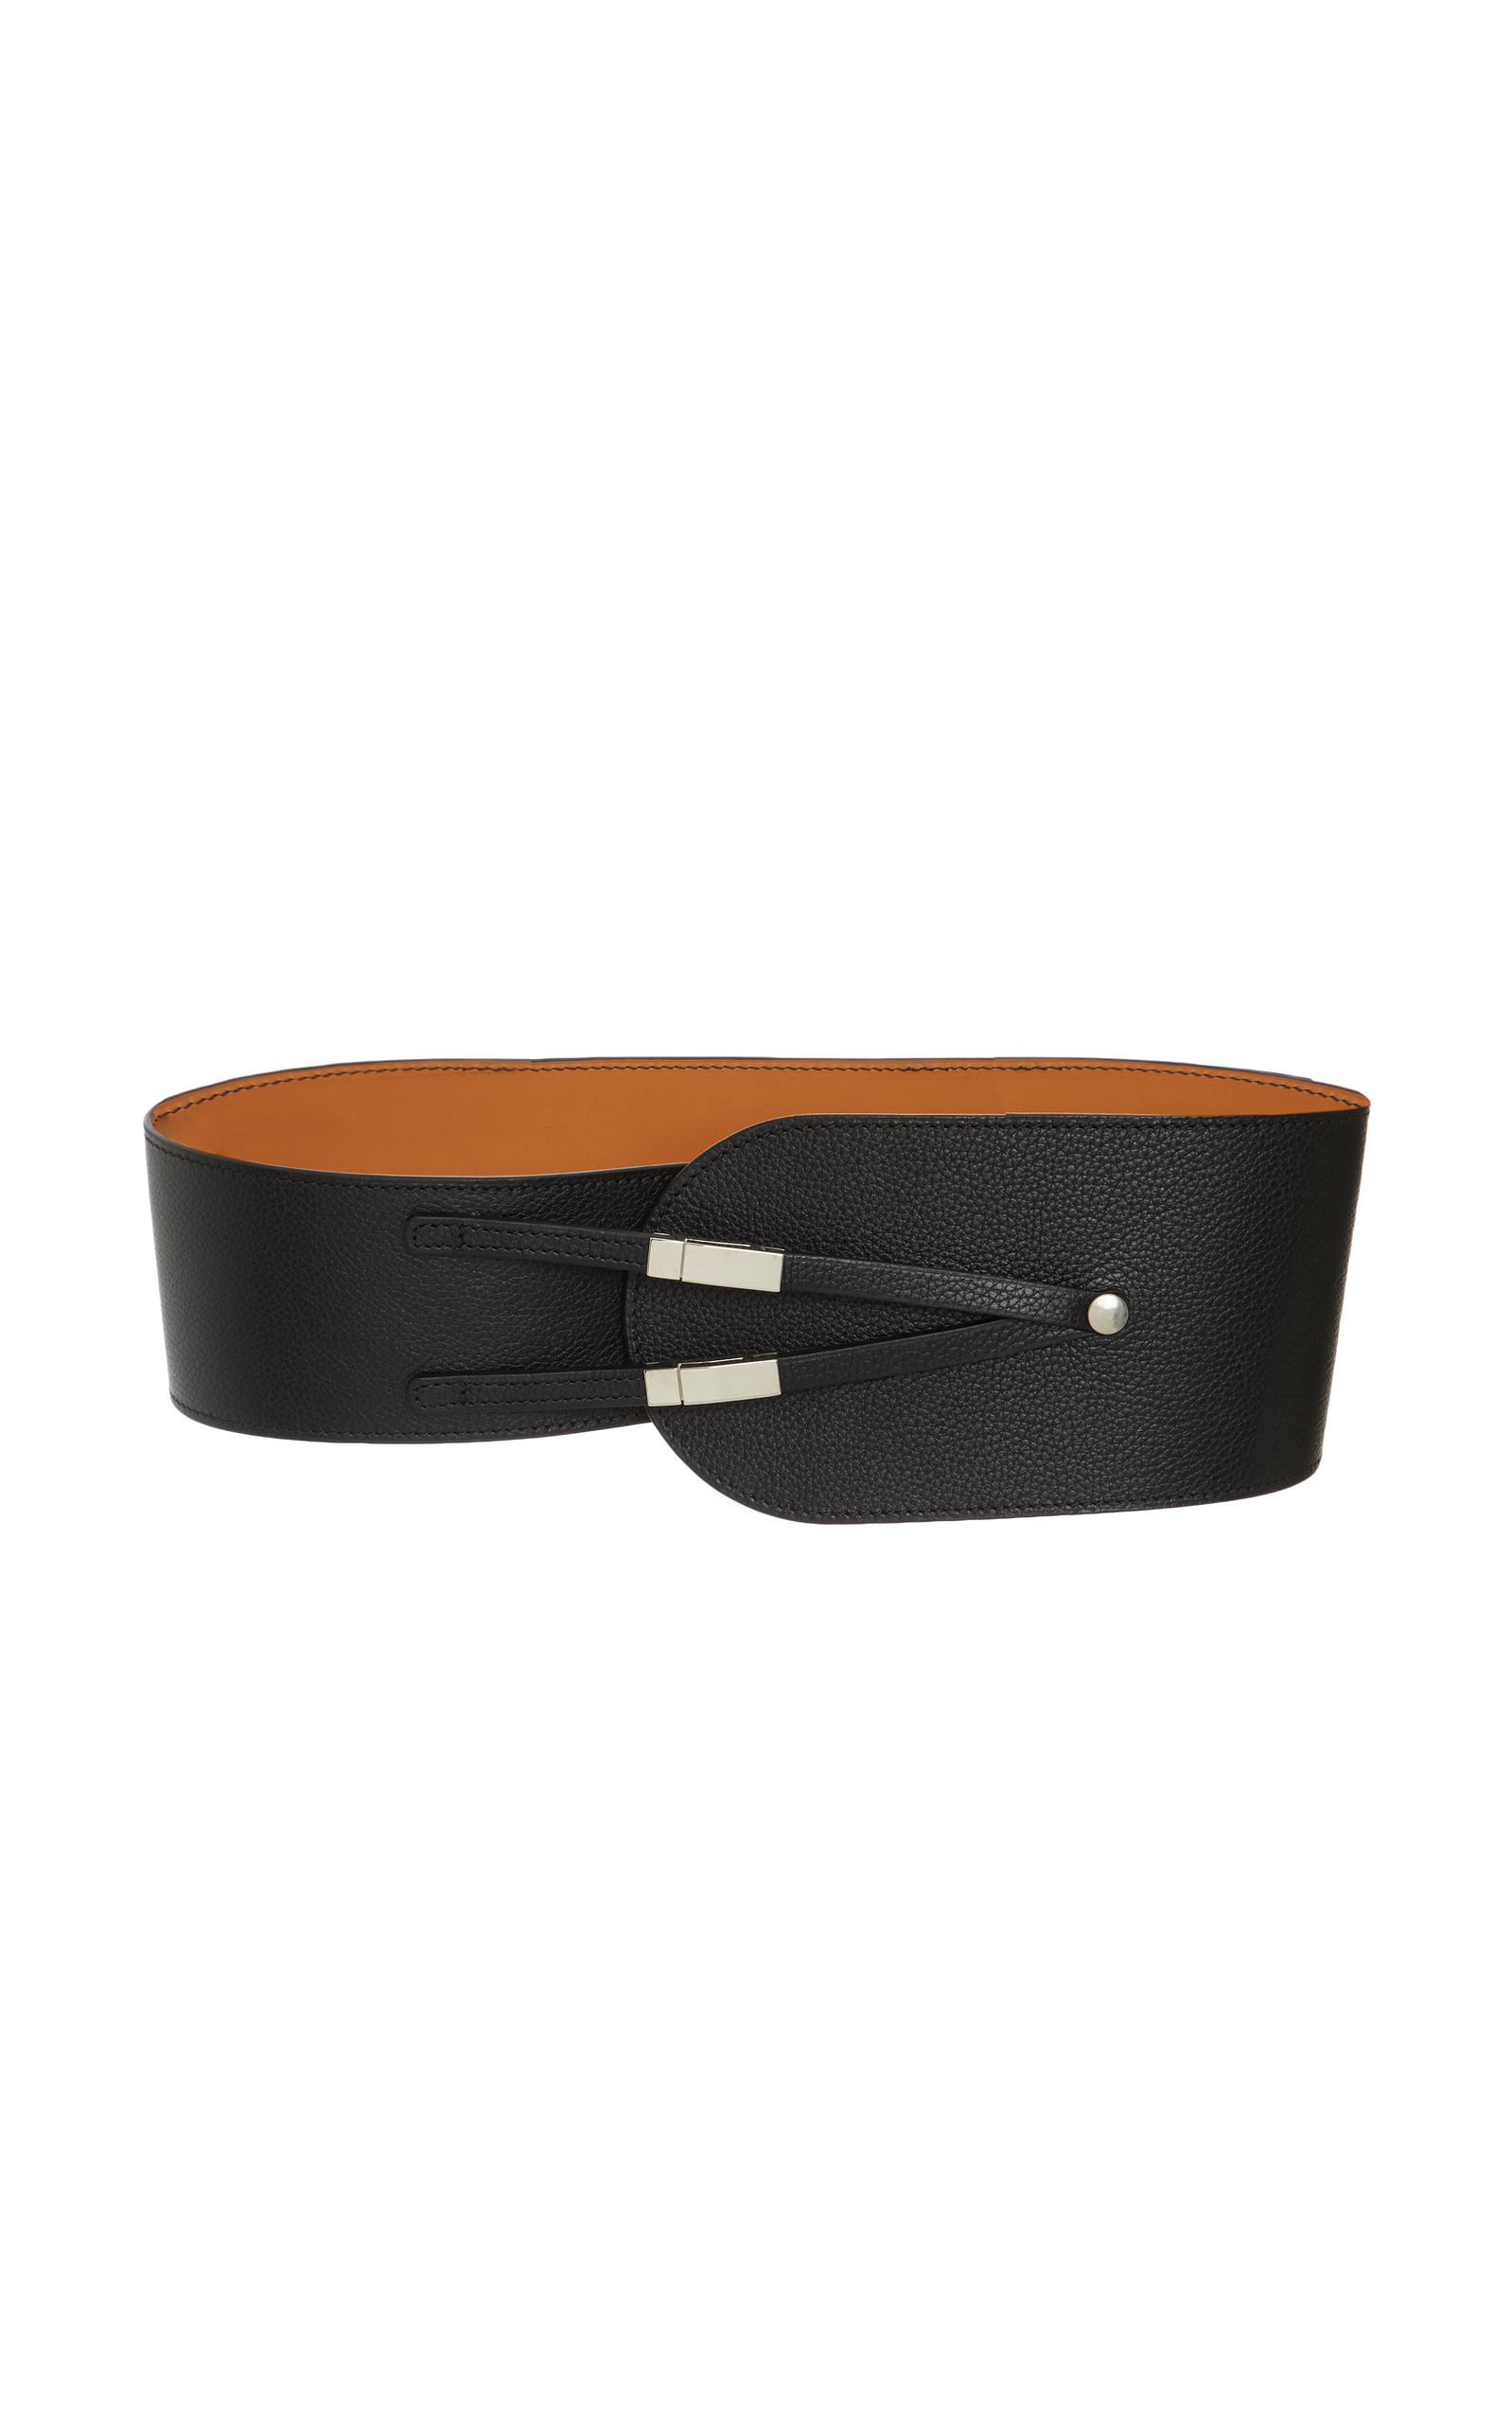 KYOTO WIDE LEATHER BELT